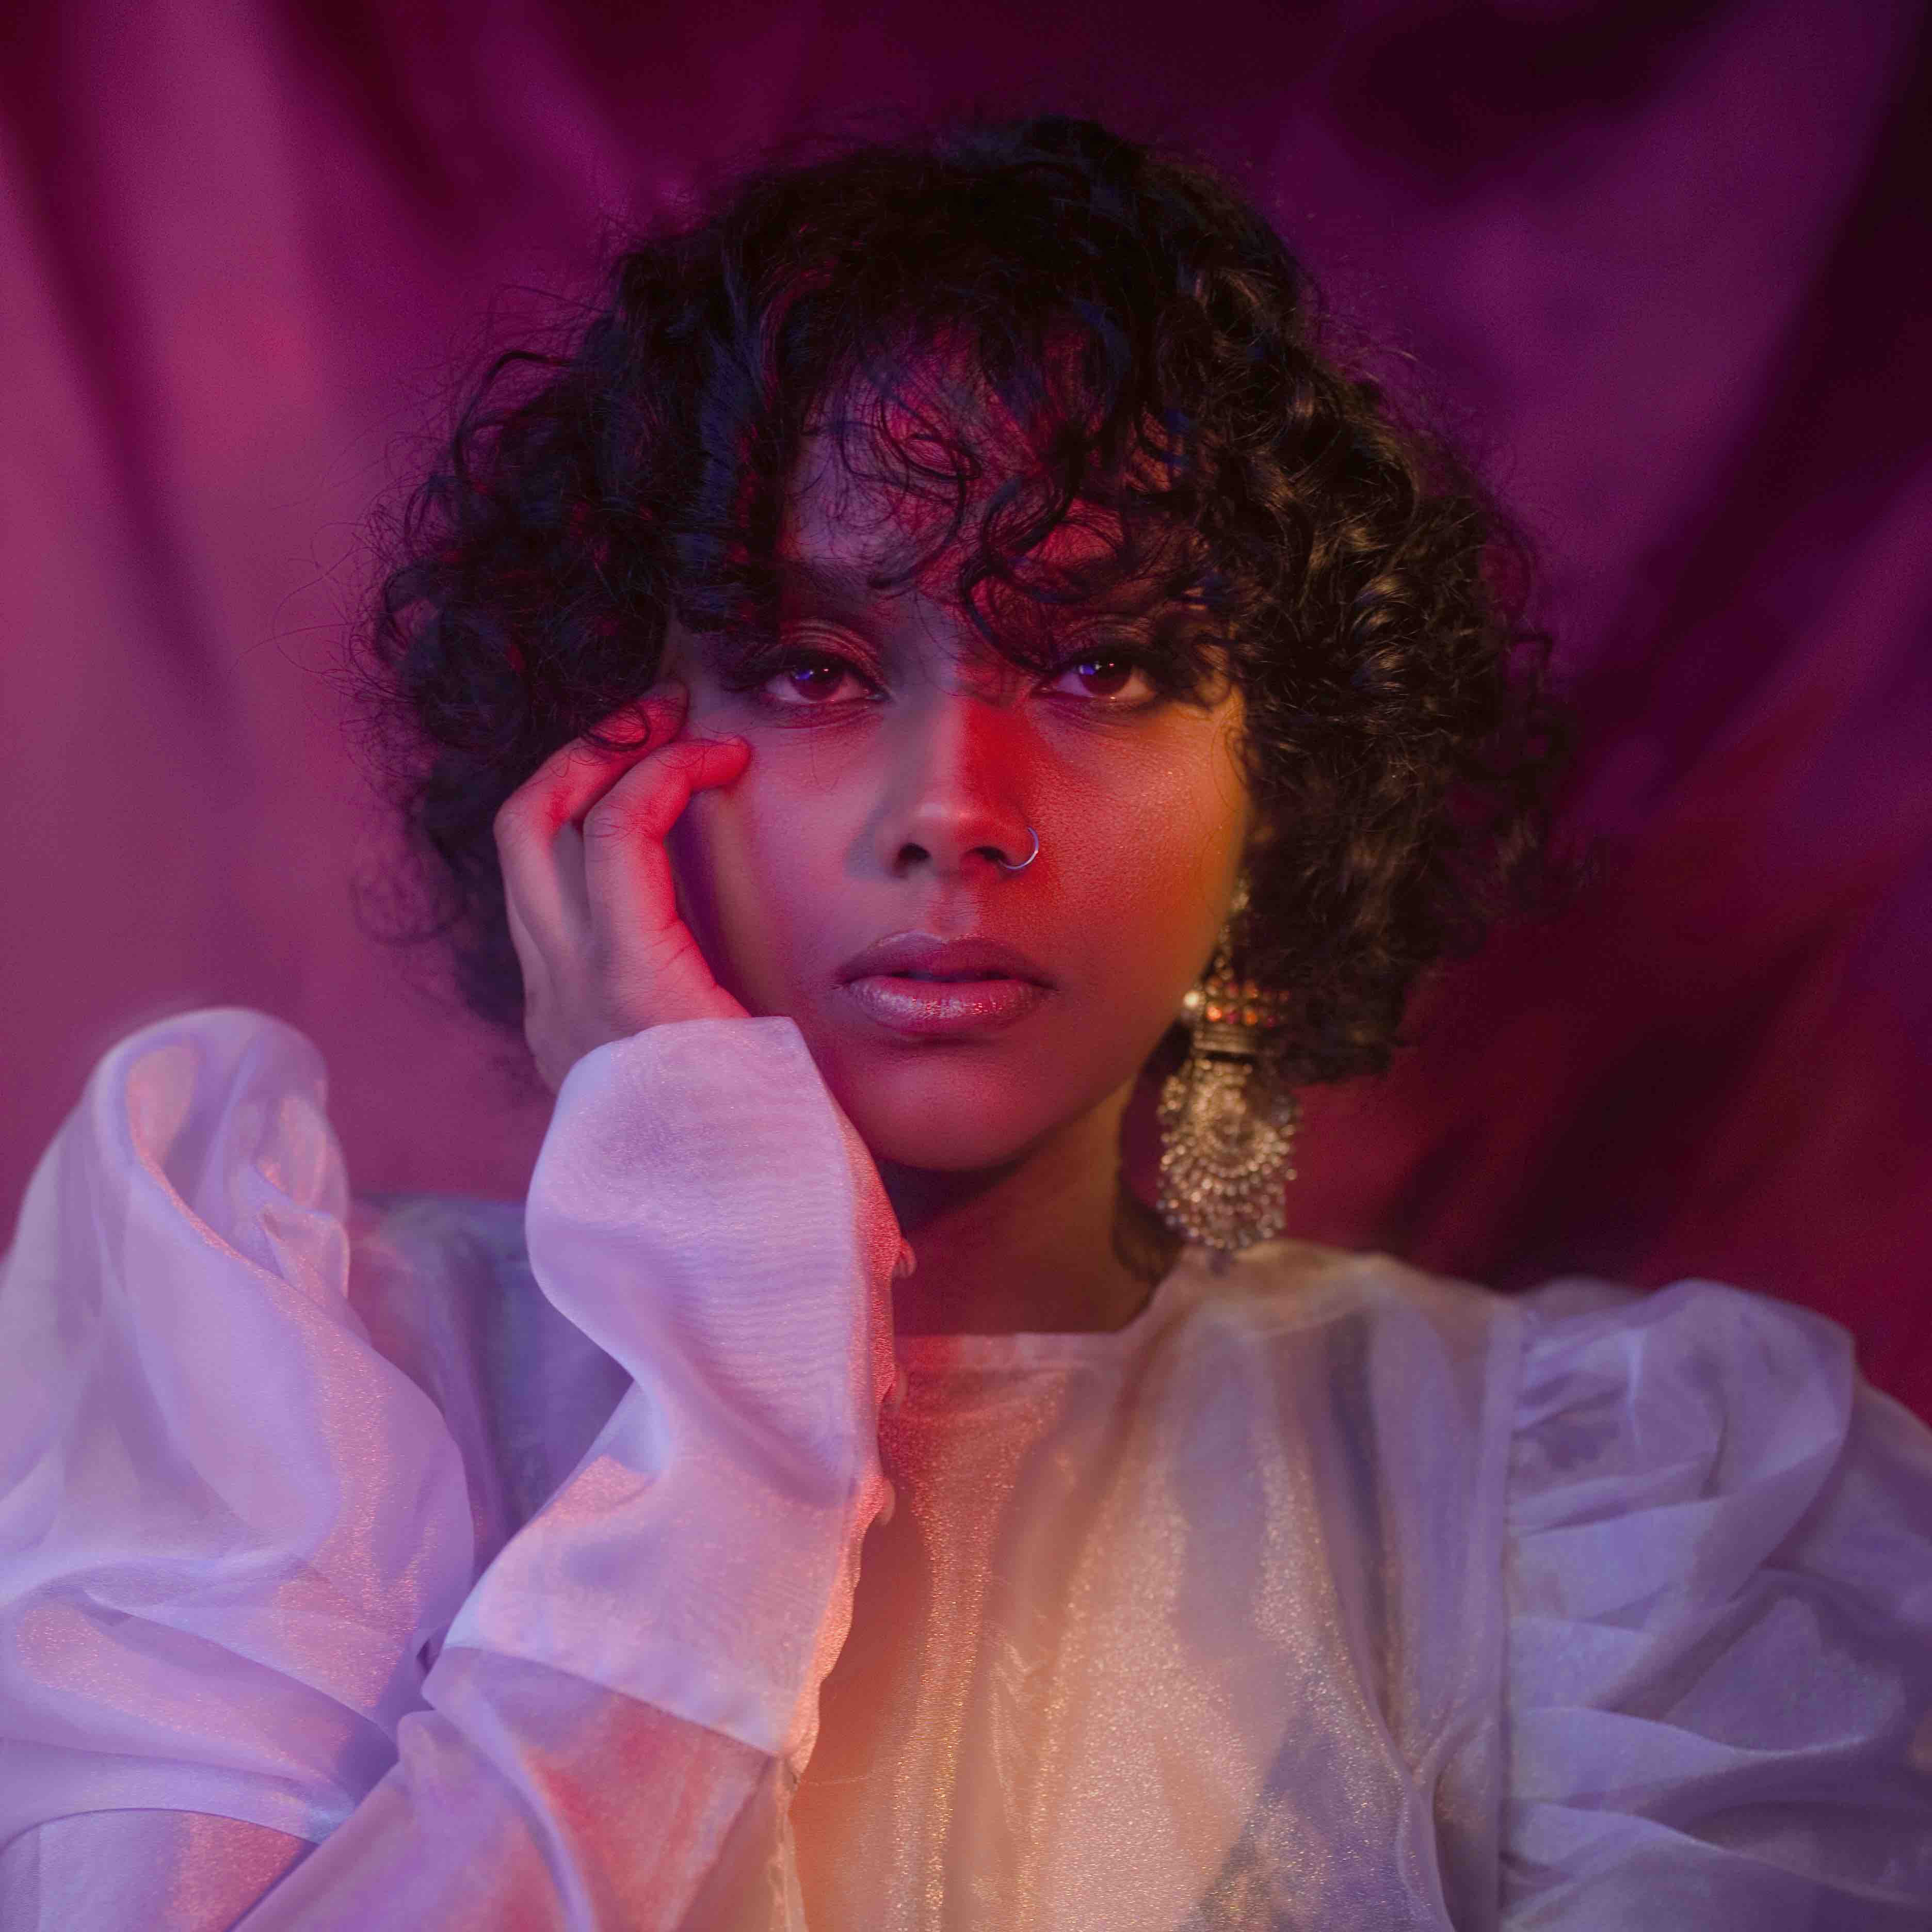 CHOORILE' MESMERIZES - THE DEBUT SINGLE FROM NEW MUSIC ARTIST ...